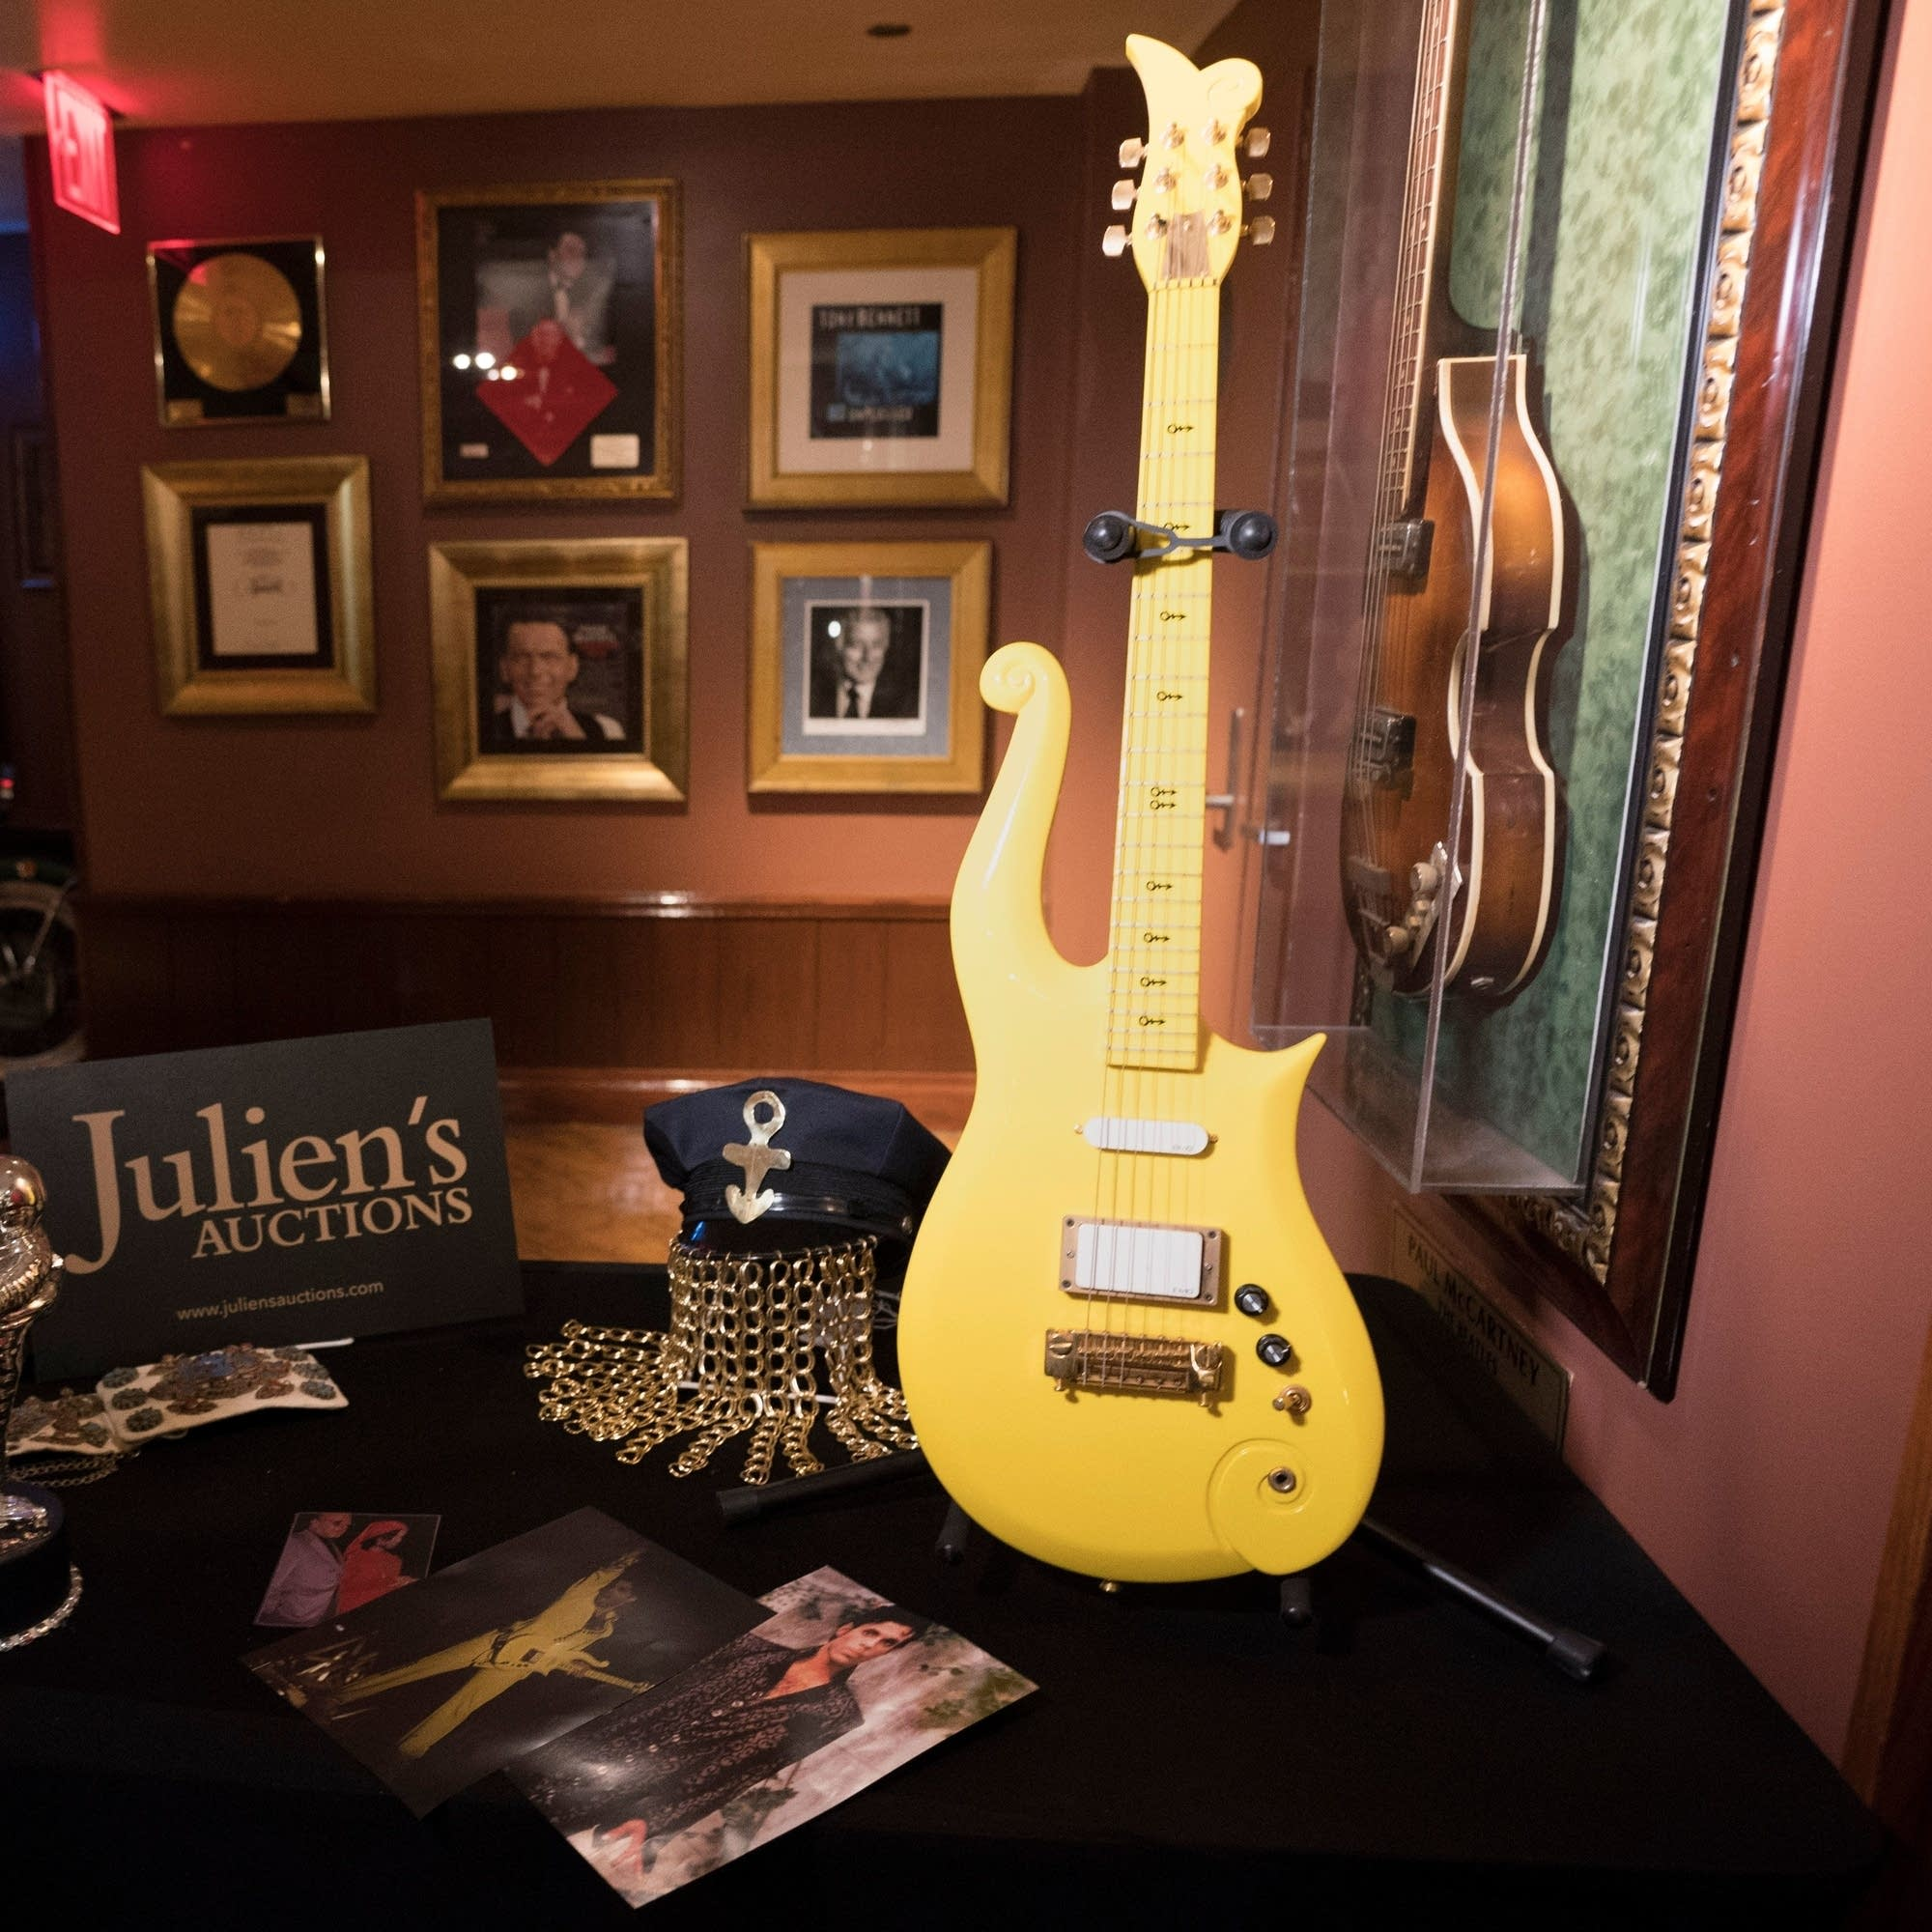 Prince's yellow Cloud guitar displayed along with other auction items.